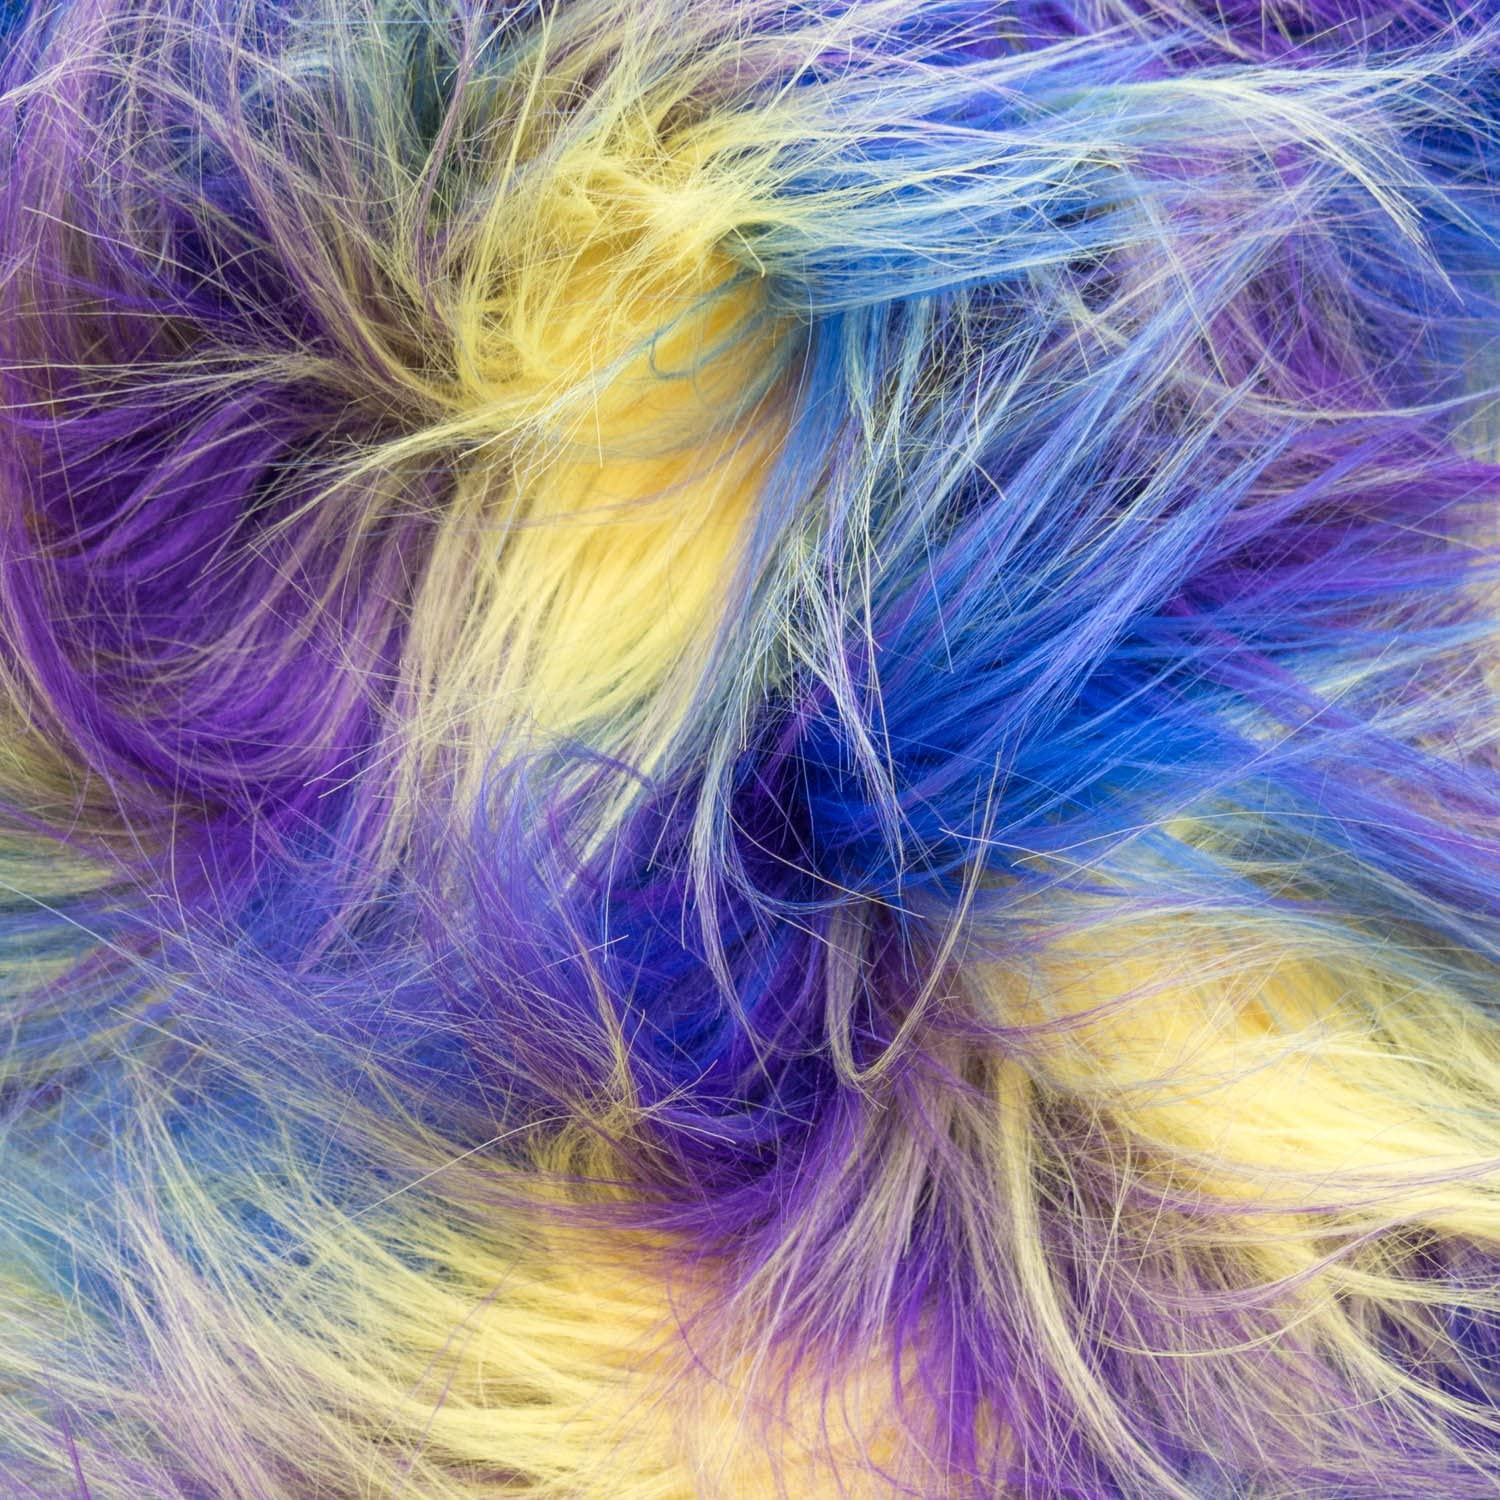 Faux Fake Fur Versicolor Jumble 62 Inch Wide Fabric by The Yard F.E. Blue Purple Yellow